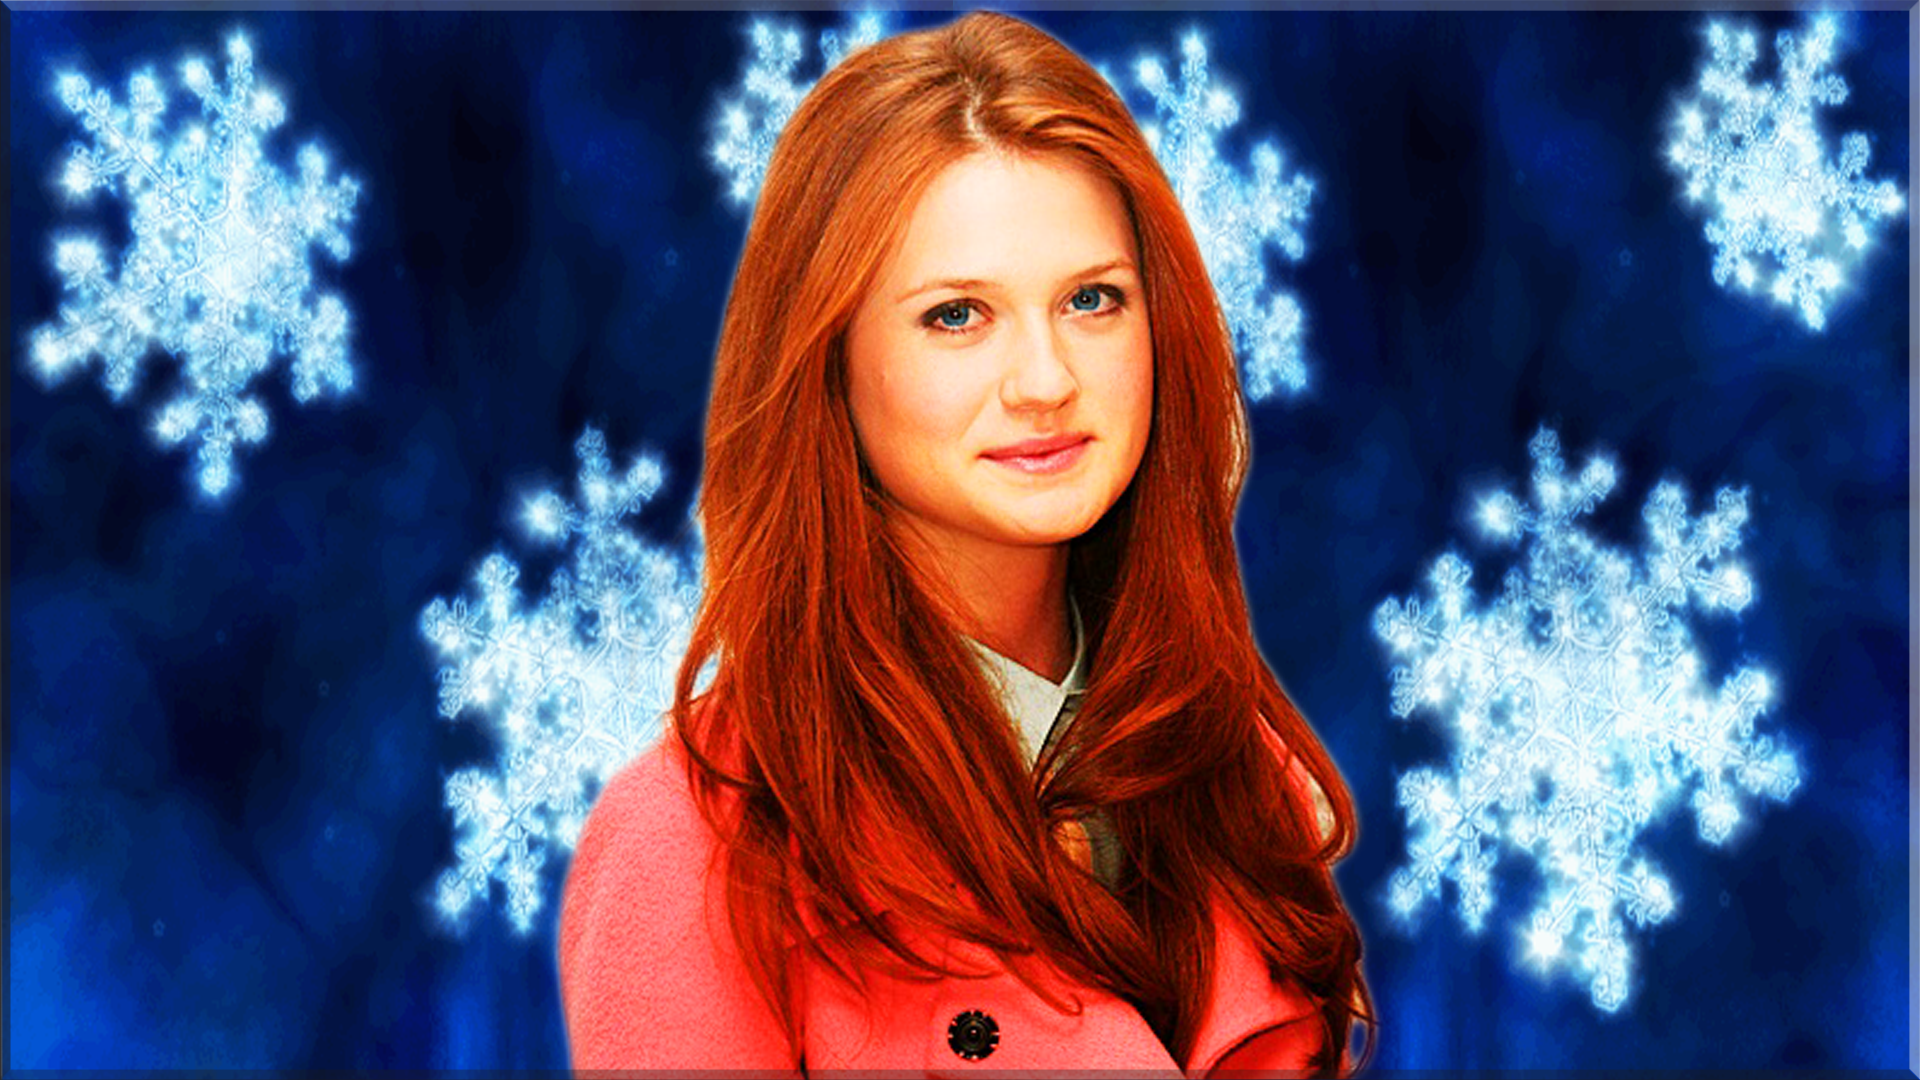 1920x1080 - Bonnie Wright Wallpapers 2